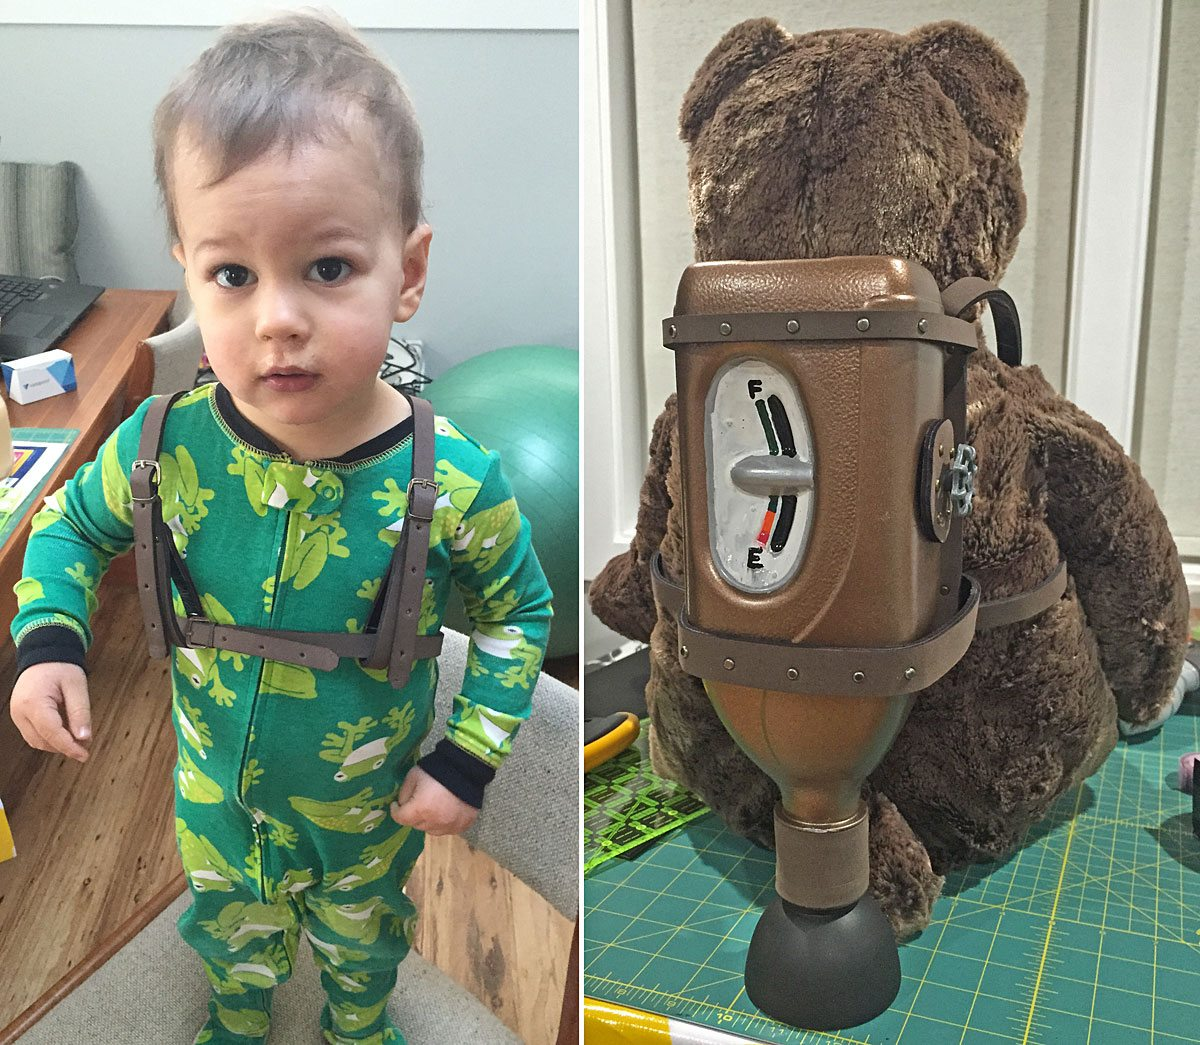 Captain Owen trying on his finished jetpack and Castle Bear modelling it. Photo by Will James.